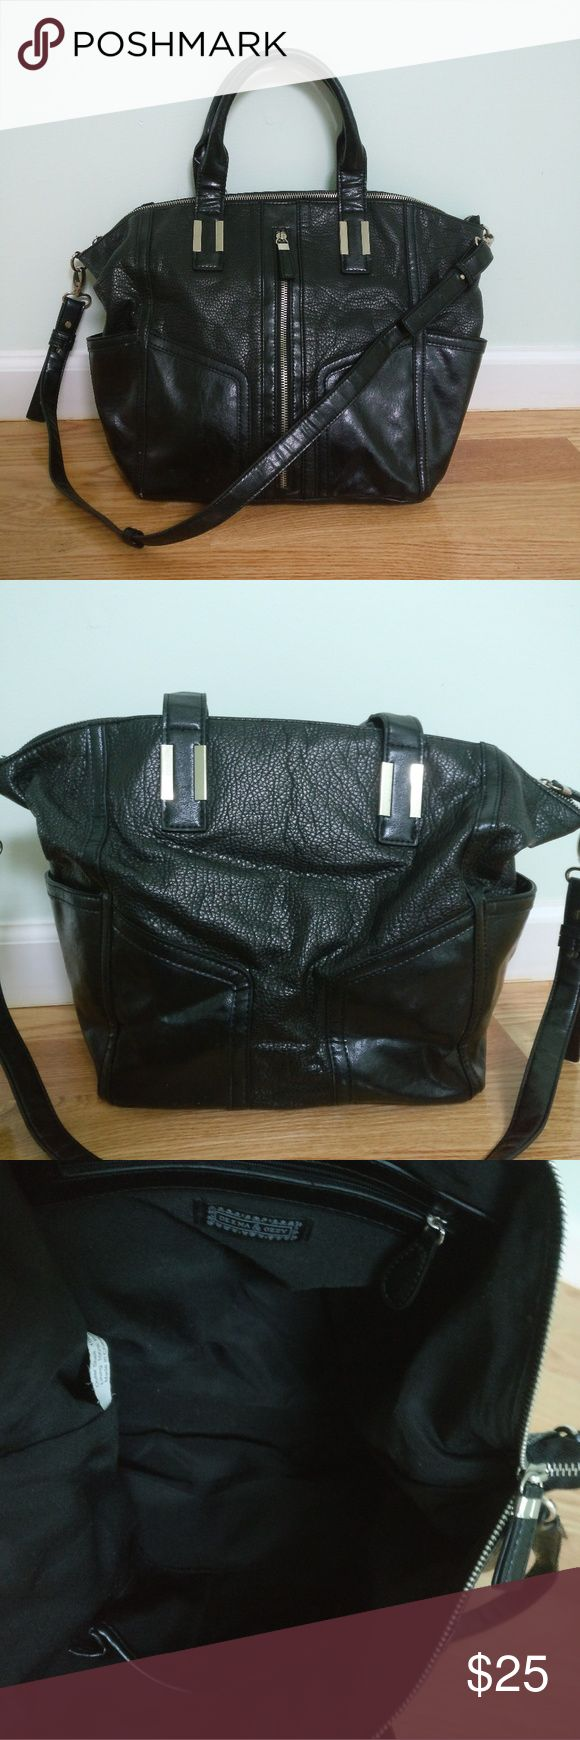 """Deena & Ozzy Vegan Leather Moto Zip Satchel In excellent condition, gently used. Removable/adjustable strap, slit pockets on the side with interior cell phone and zip compartments.  Measurements:  Length: 11"""" Width: 6"""" Height: 13"""" Deena & Ozzy Bags Satchels"""